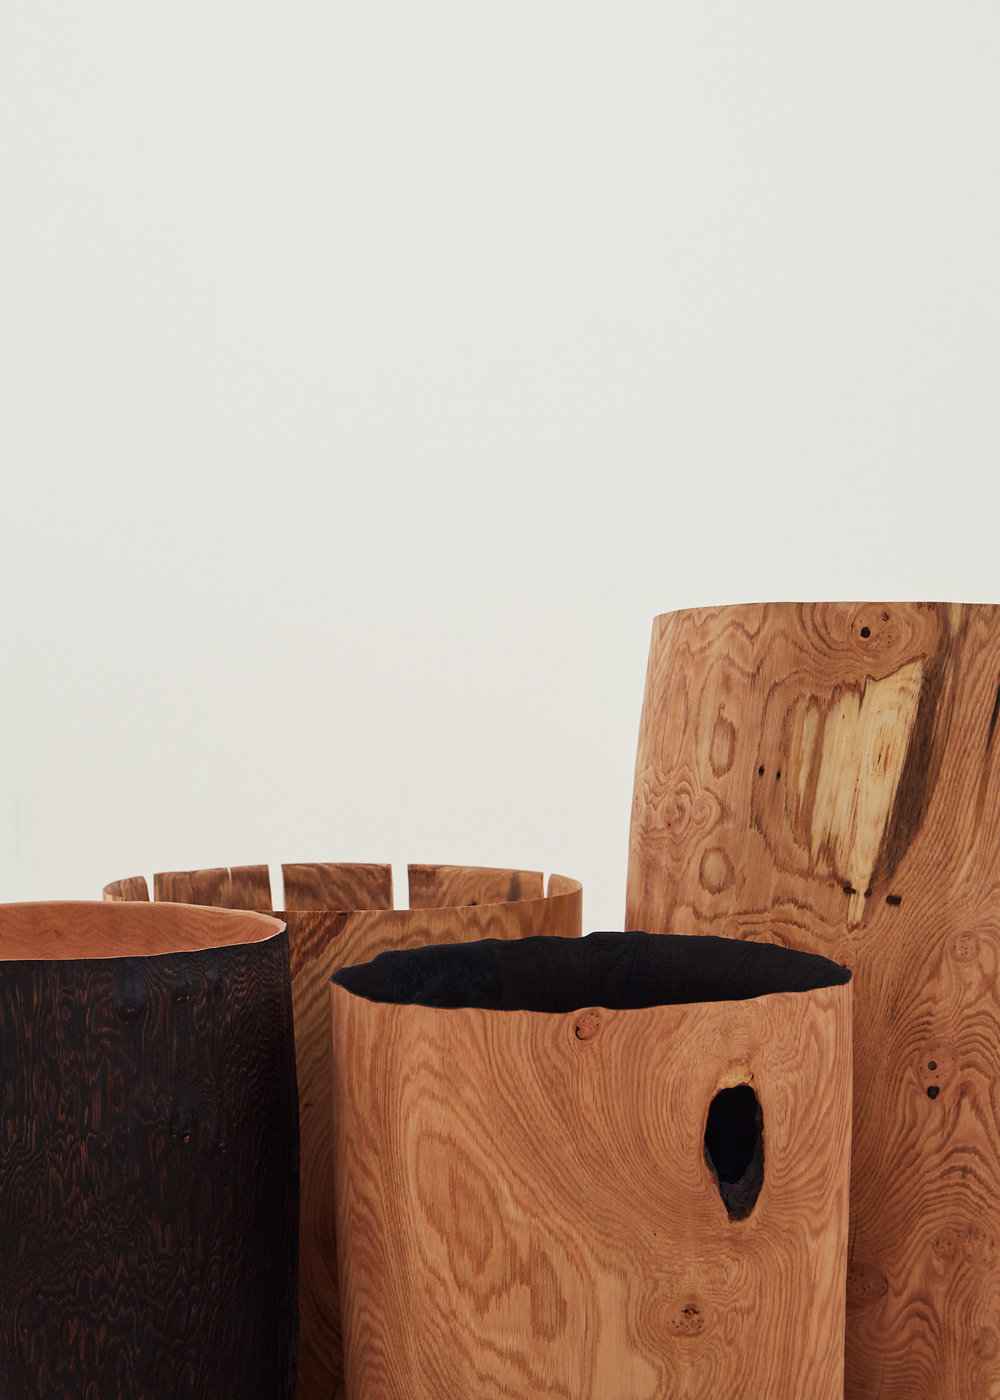 Burnt, Fallen, Hollowed and Hewn Vessels (detail)  | green oak and sweet chestnut, 2018  Installation View: Collect Open, Saatchi Gallery, London | Image by Yeshen Venema